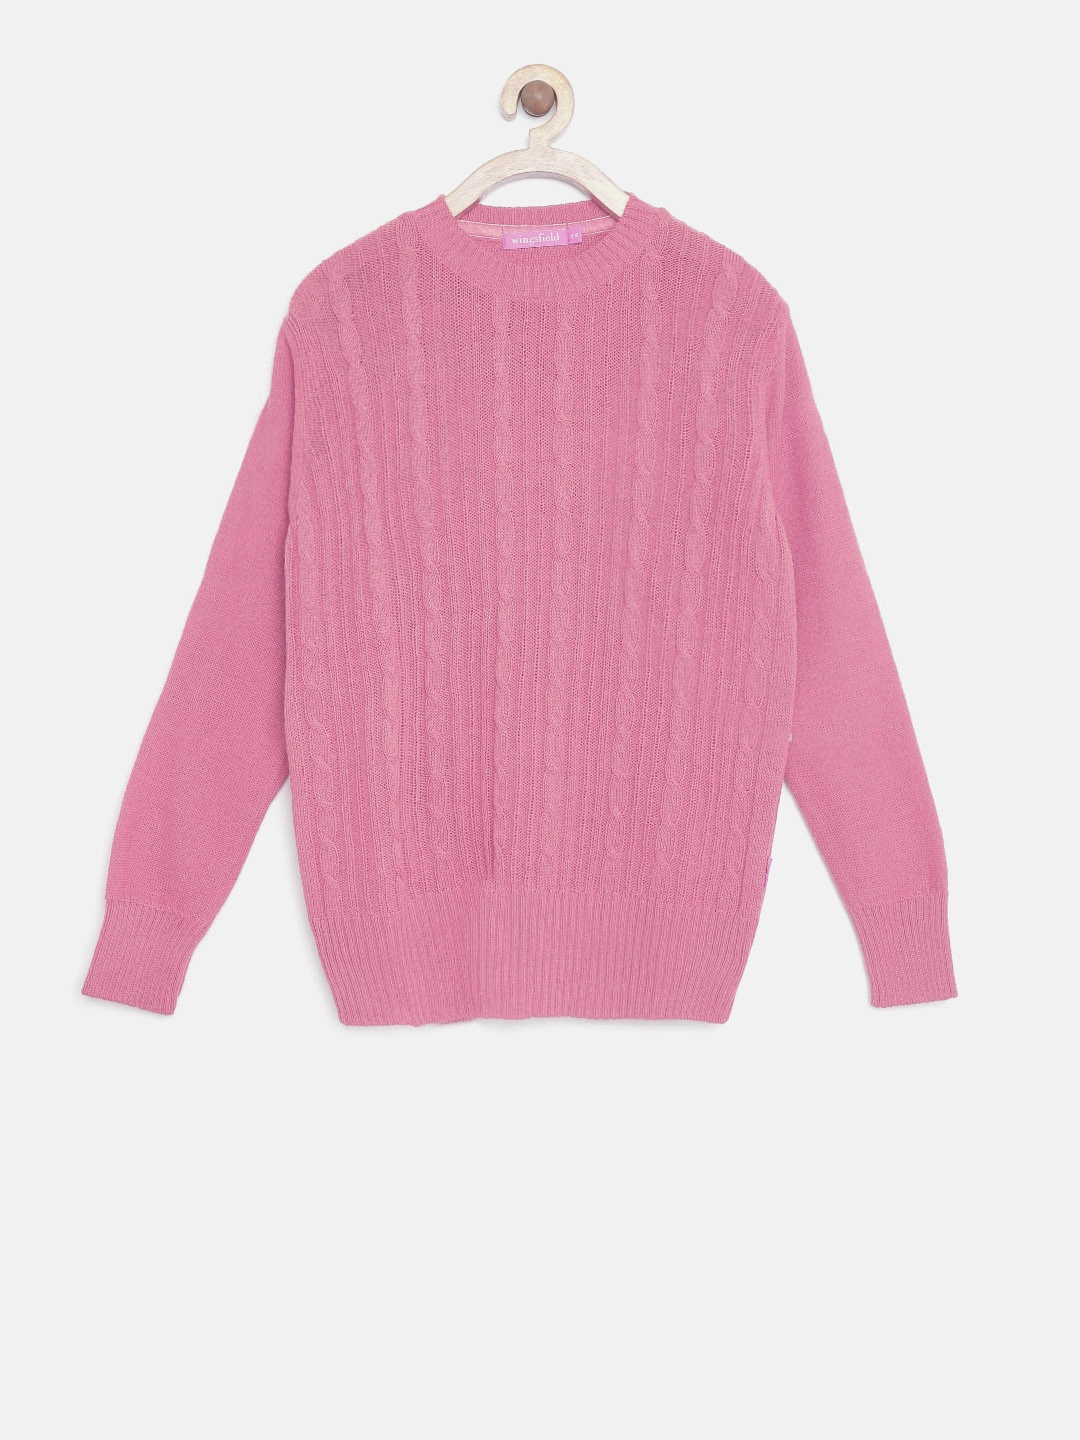 041aa825585d Buy Wingsfield Girls Pink Cable Knit Sweater - Sweaters for Girls ...